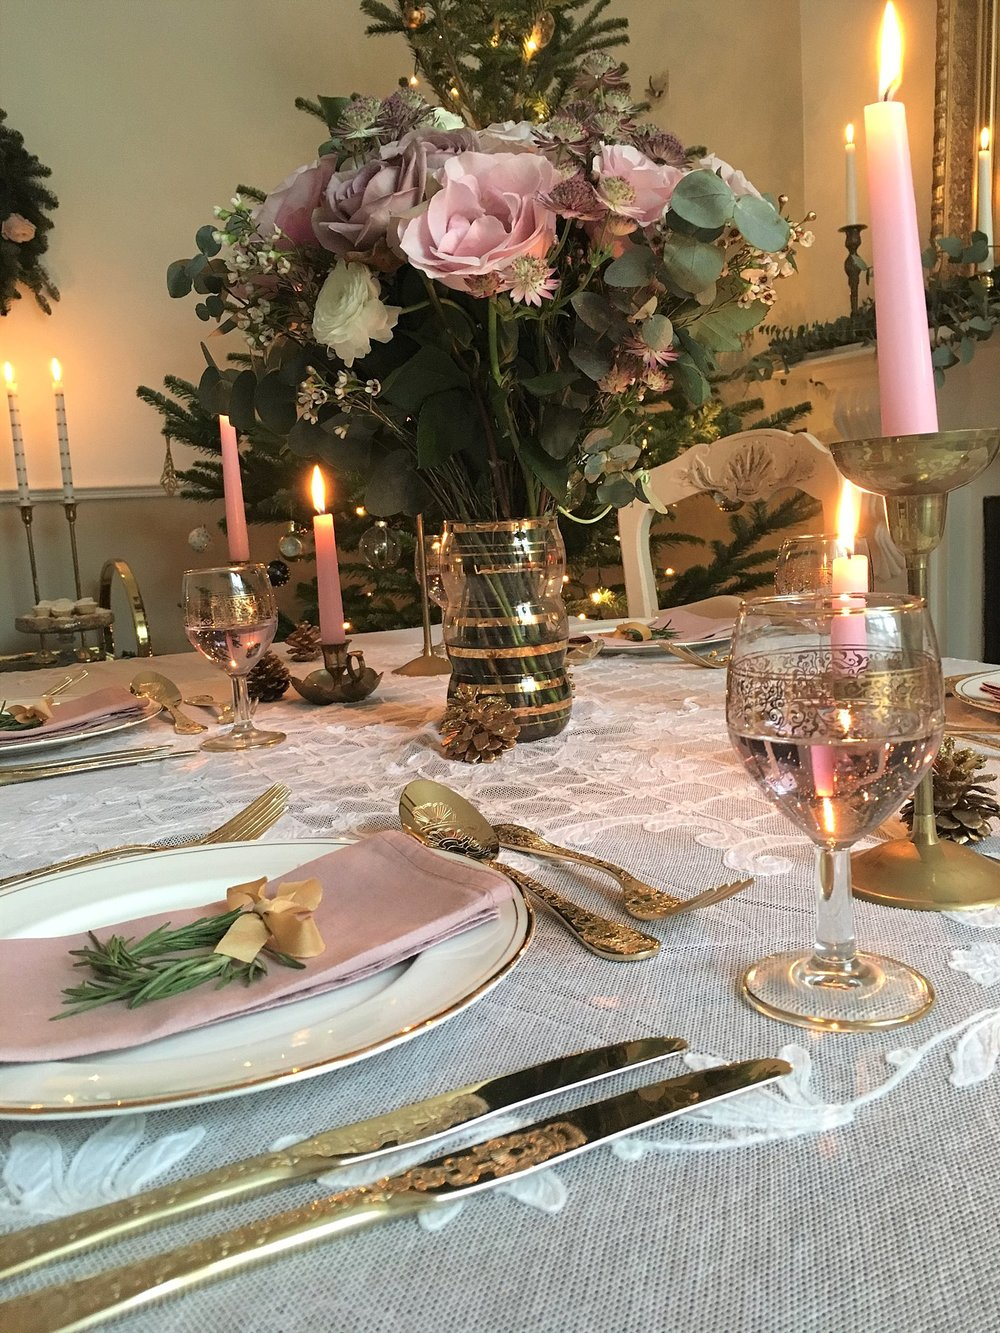 Vintage Amy Christmas Styling-Vintage Christmas-Wedding Styling South East England